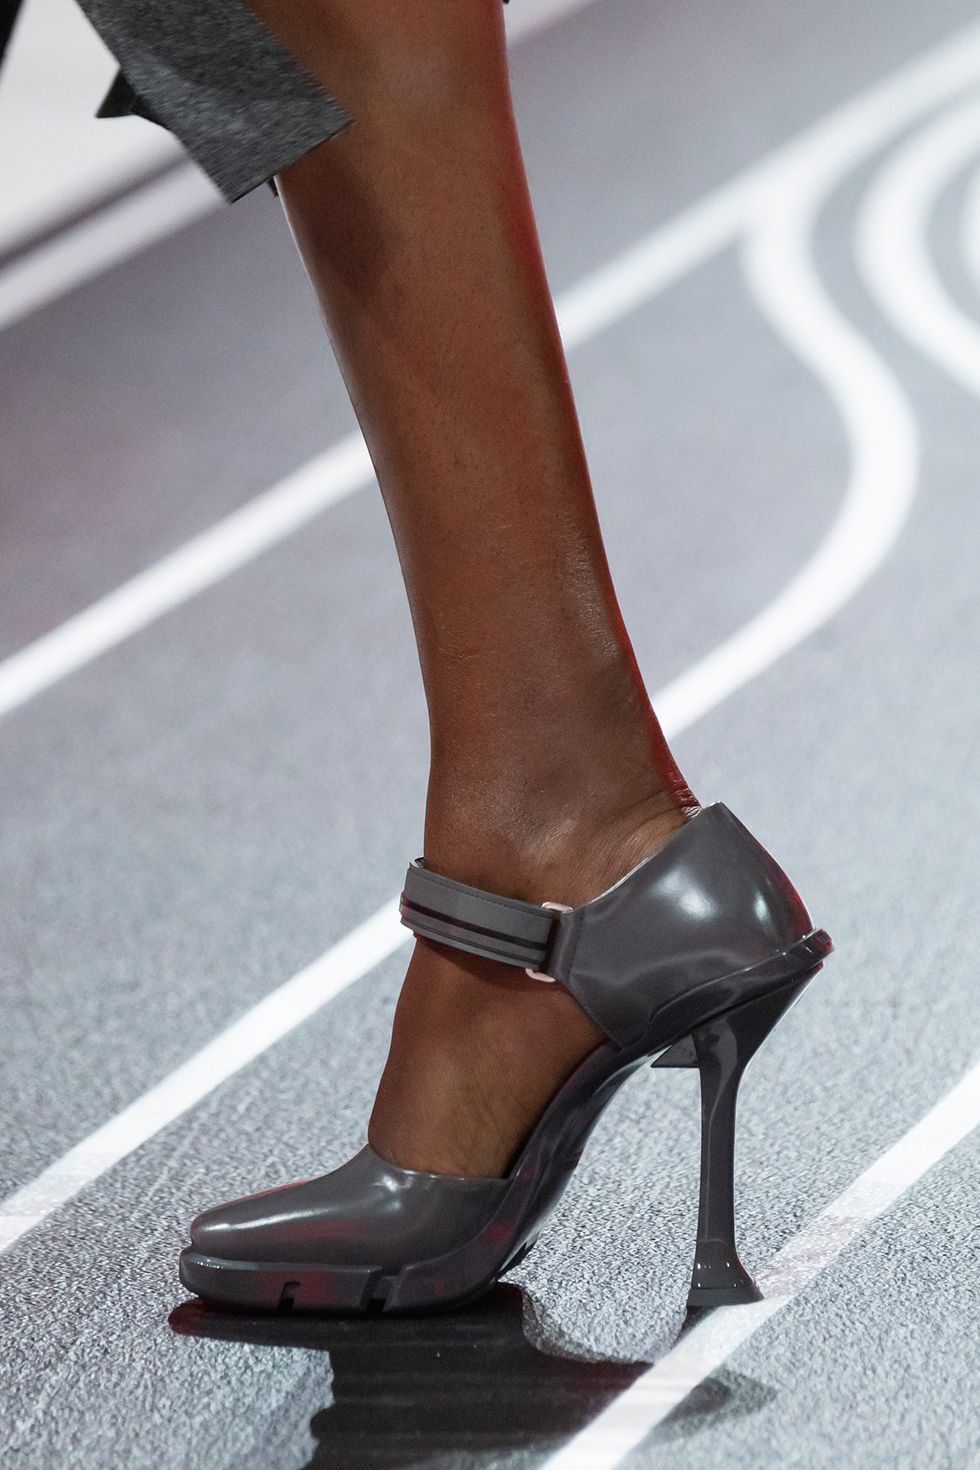 prada-fall-2020-runway-gray-heel-1582236634.jpg (980×1470)